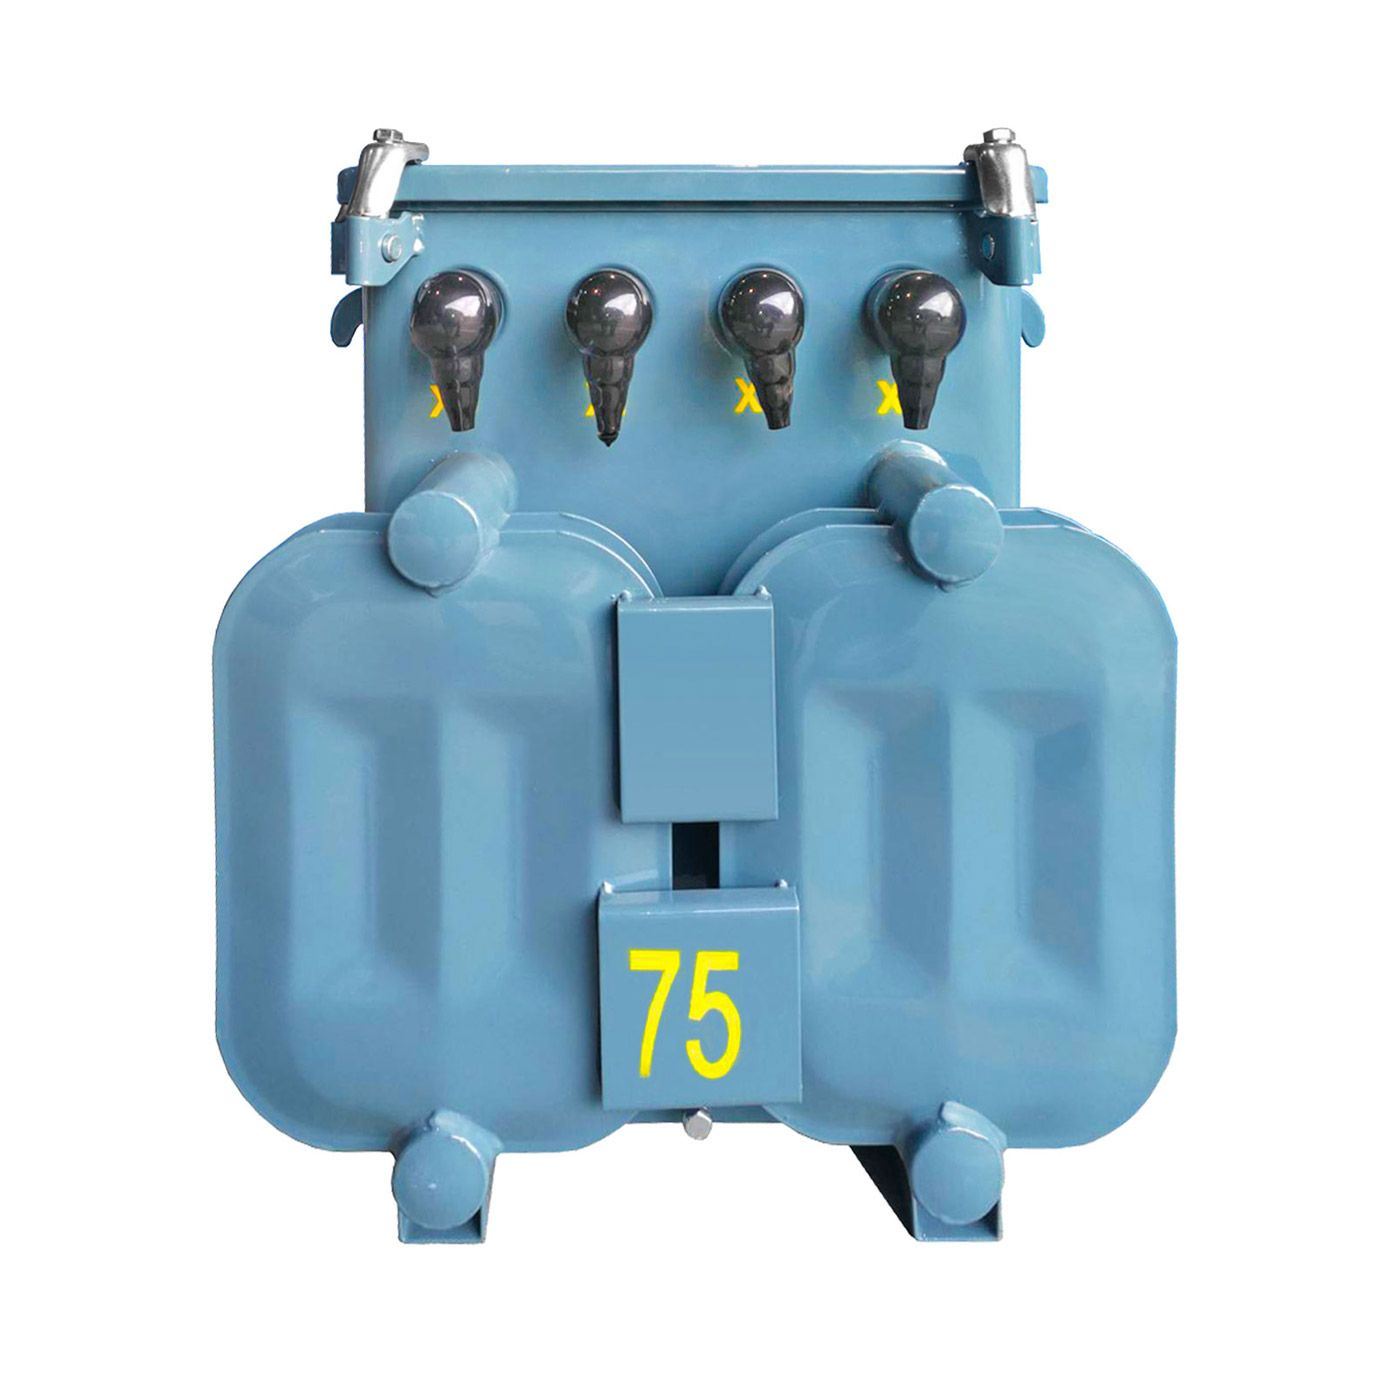 Low-Voltage Oil-Immersed Transformers (75—300 kVA) High